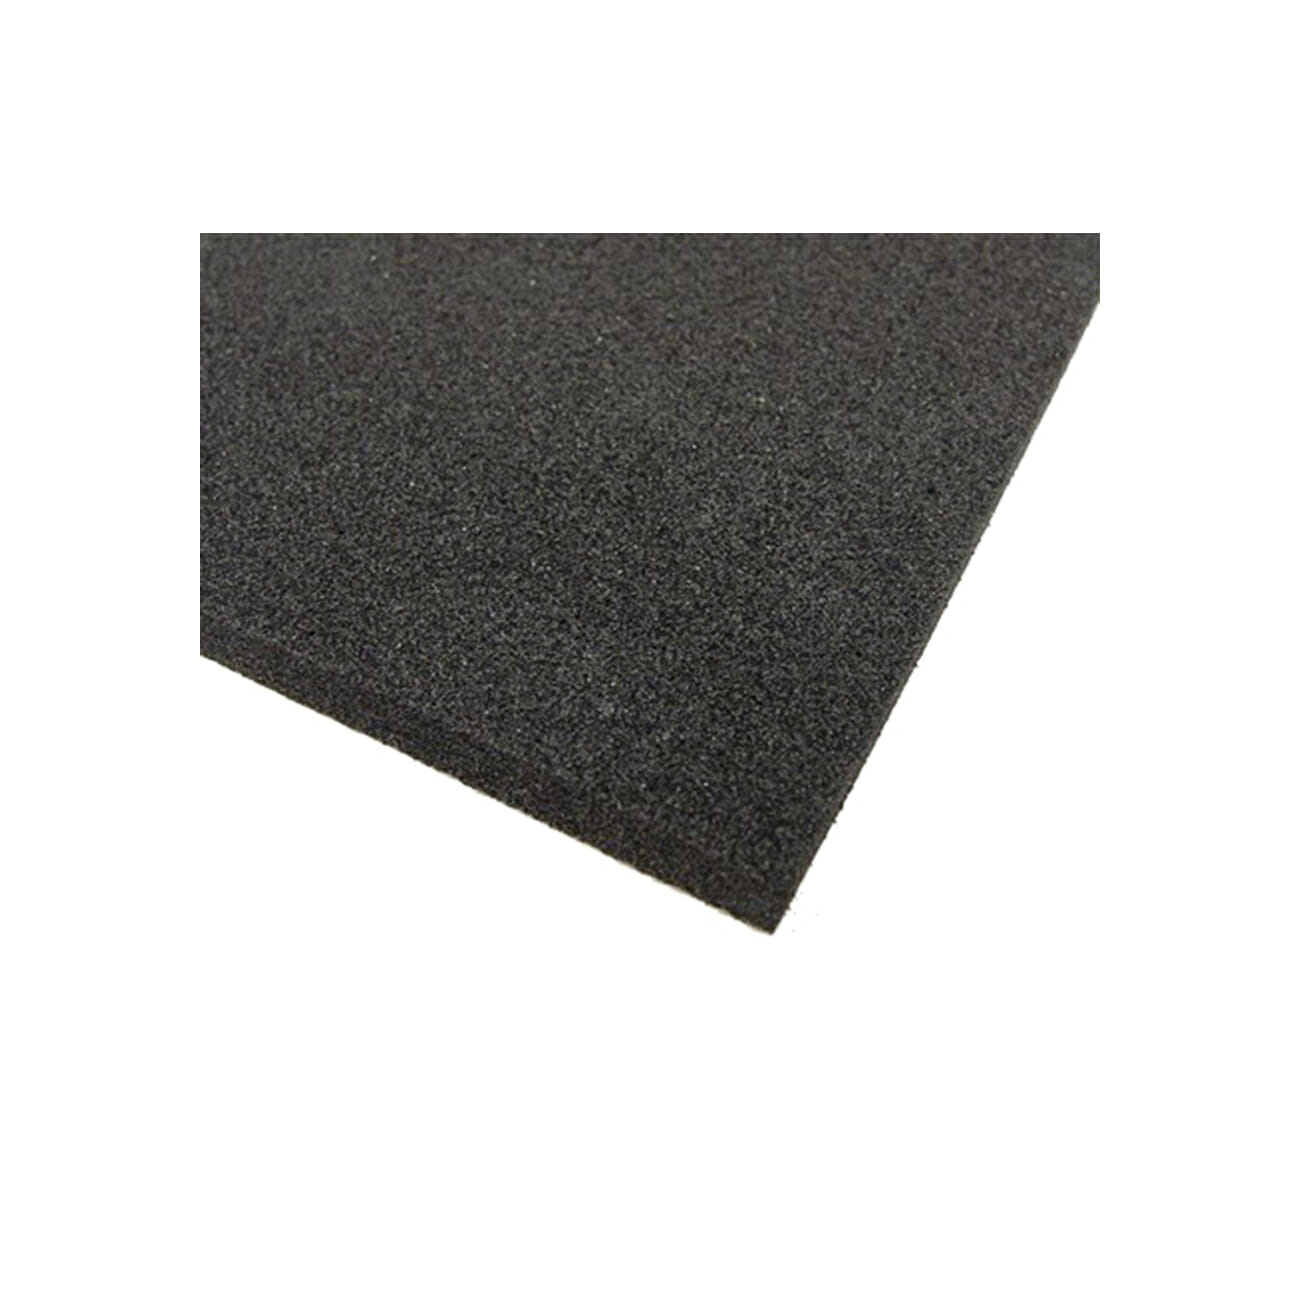 Epdm neoprene plain sponge sheet camthorne industrial for Sponge co uk